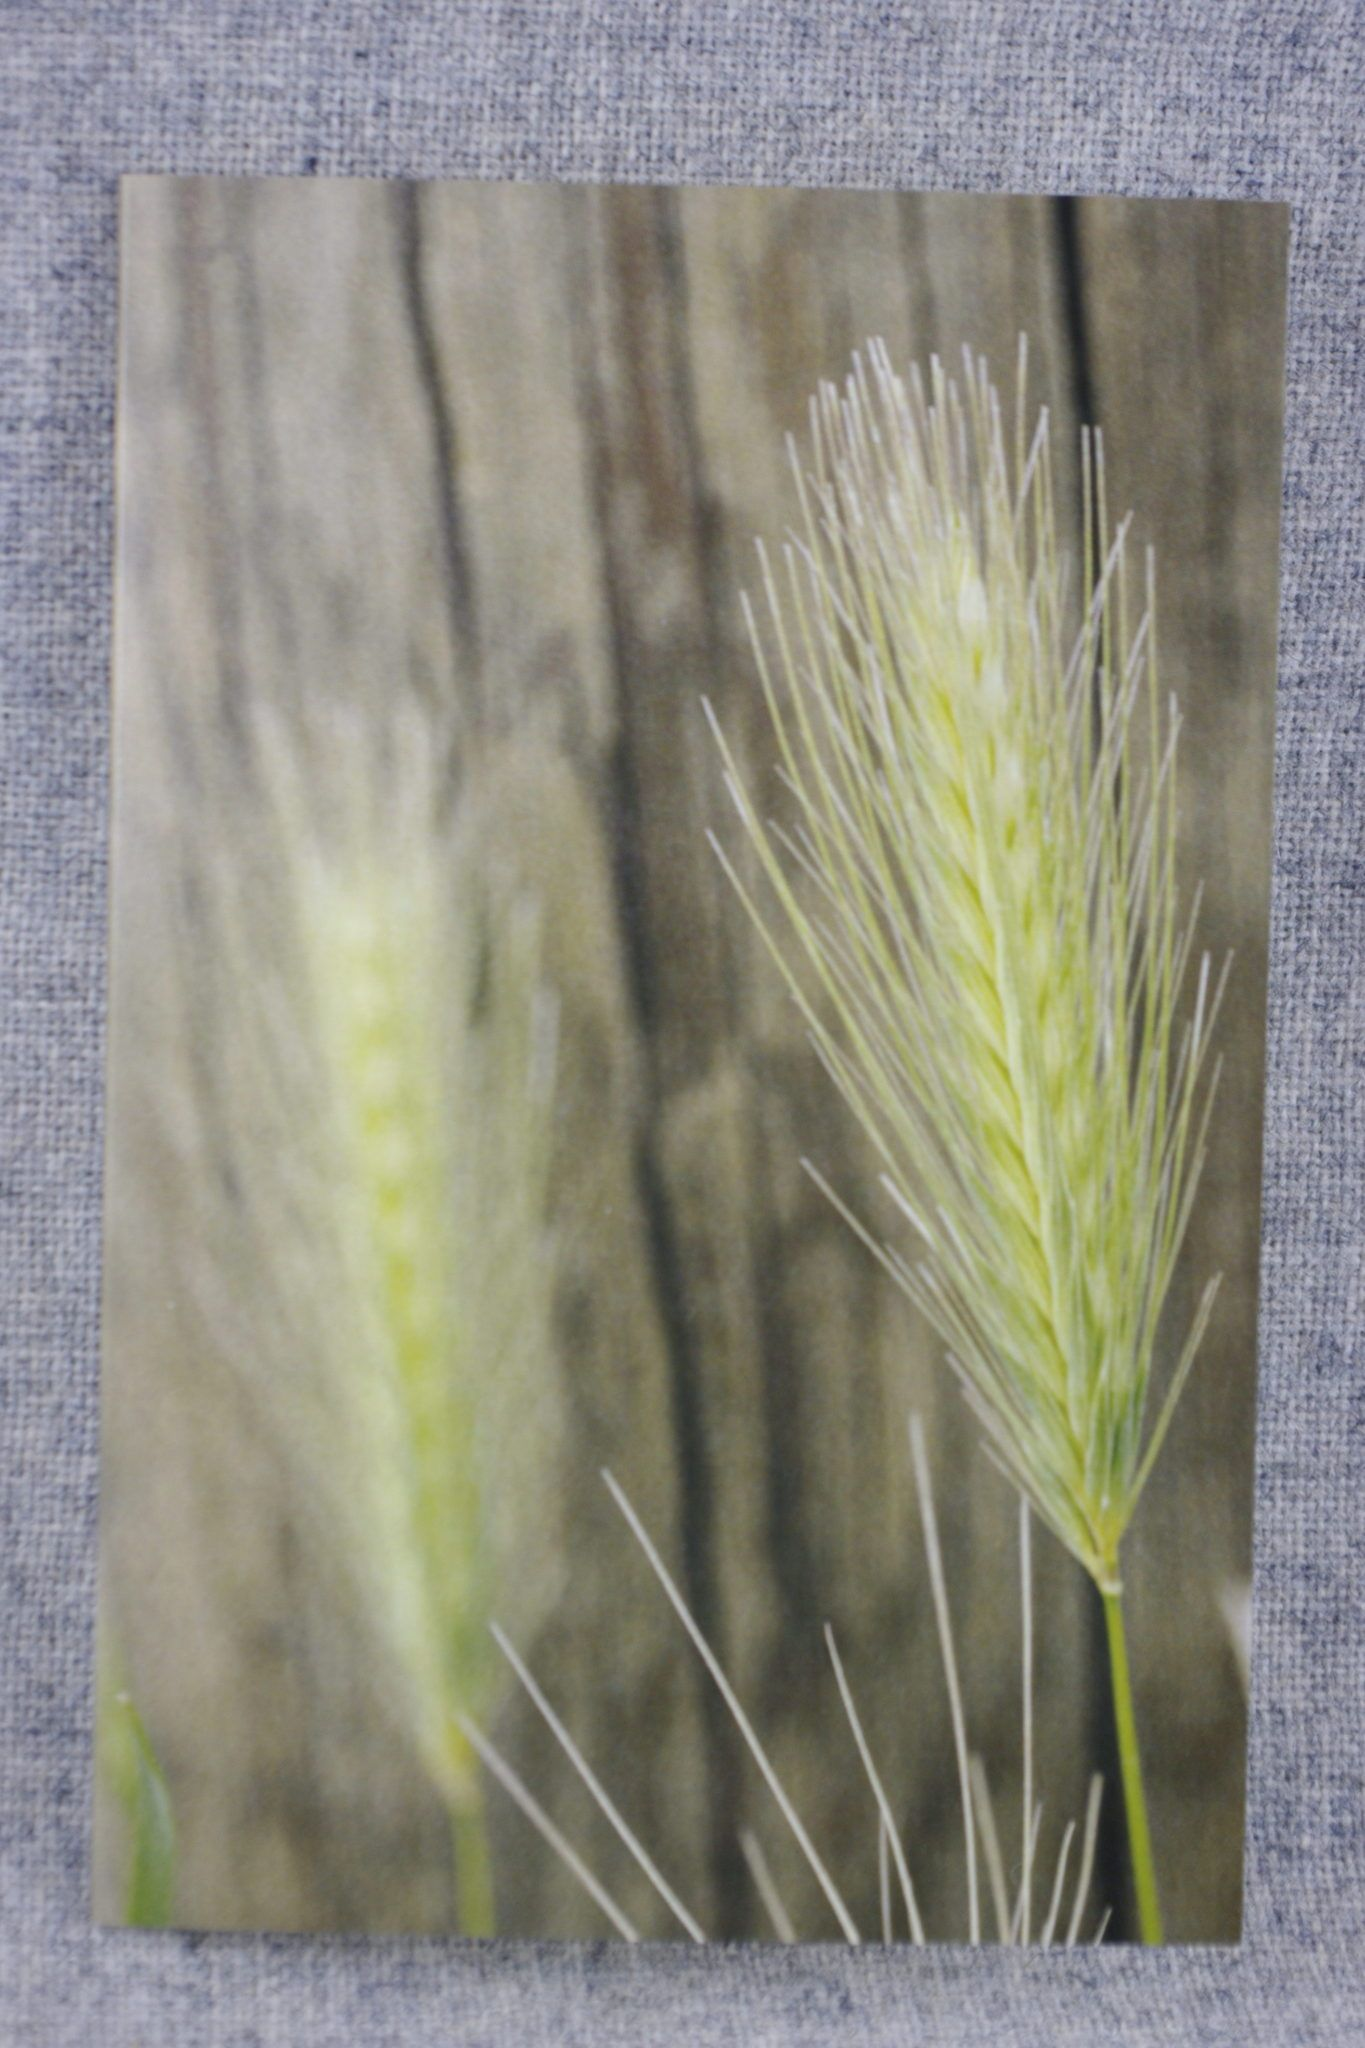 Tattoo Images Eye Of Rye: Close Up Rye Grass Heads Against A Fence Post 4x6 Photo